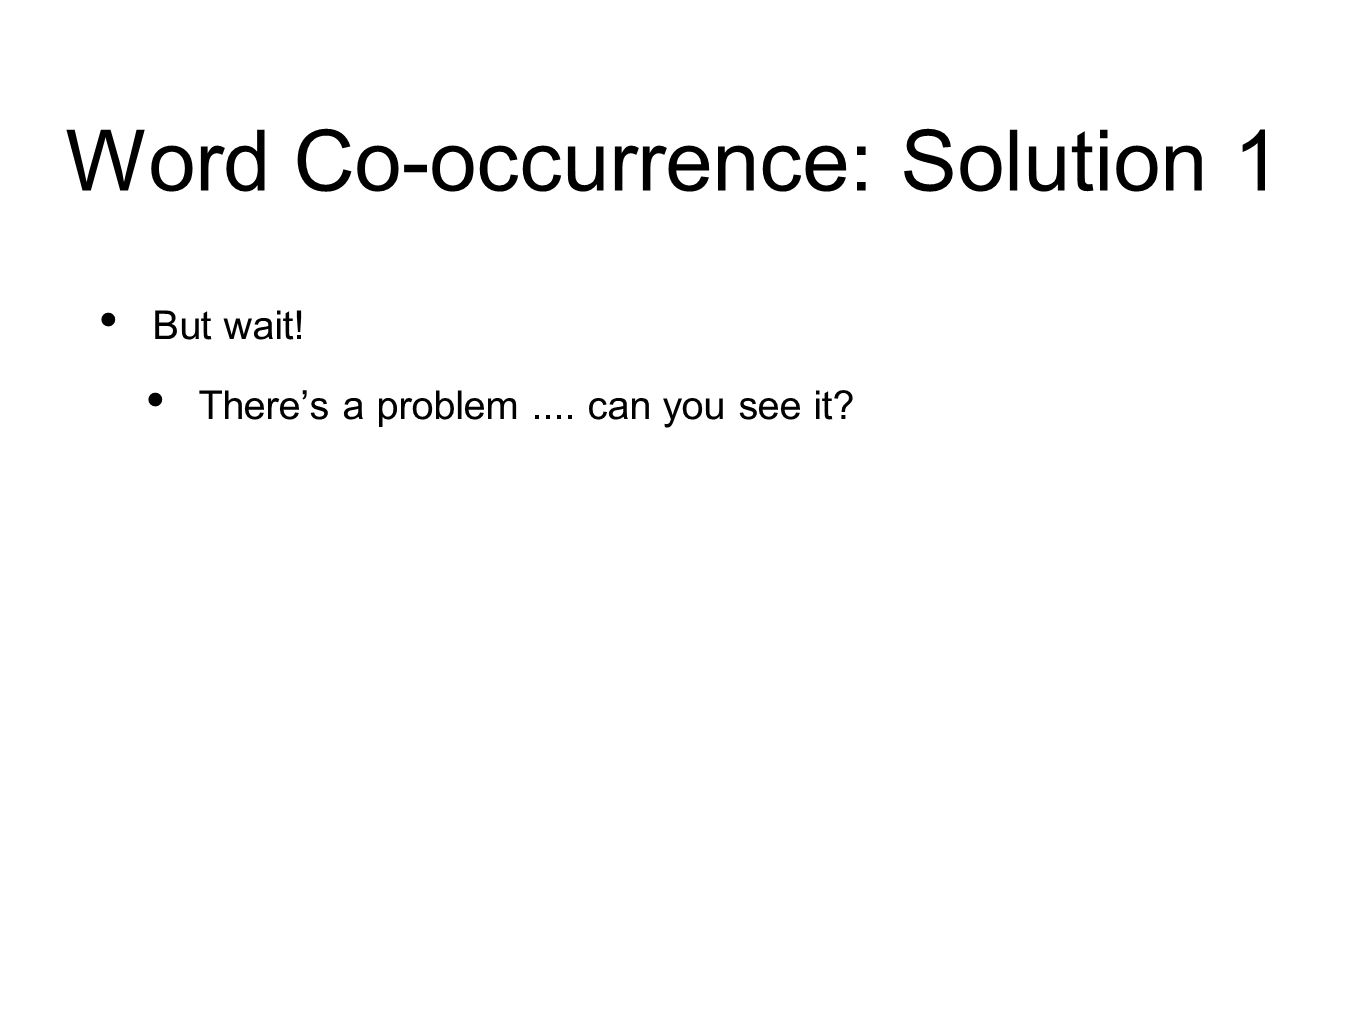 Word Co-occurrence: Solution 1 But wait! There's a problem.... can you see it